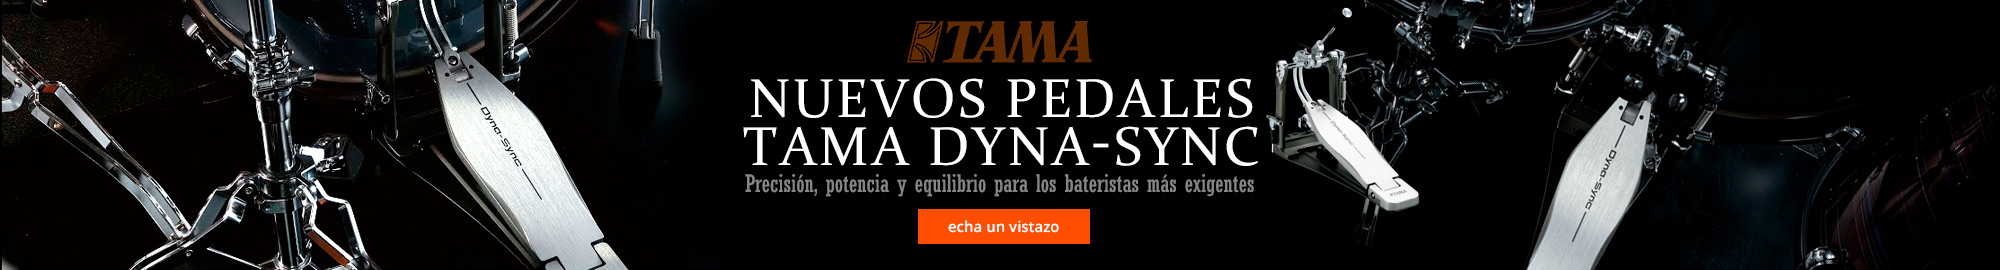 Pedales Tama Dyna-Sync